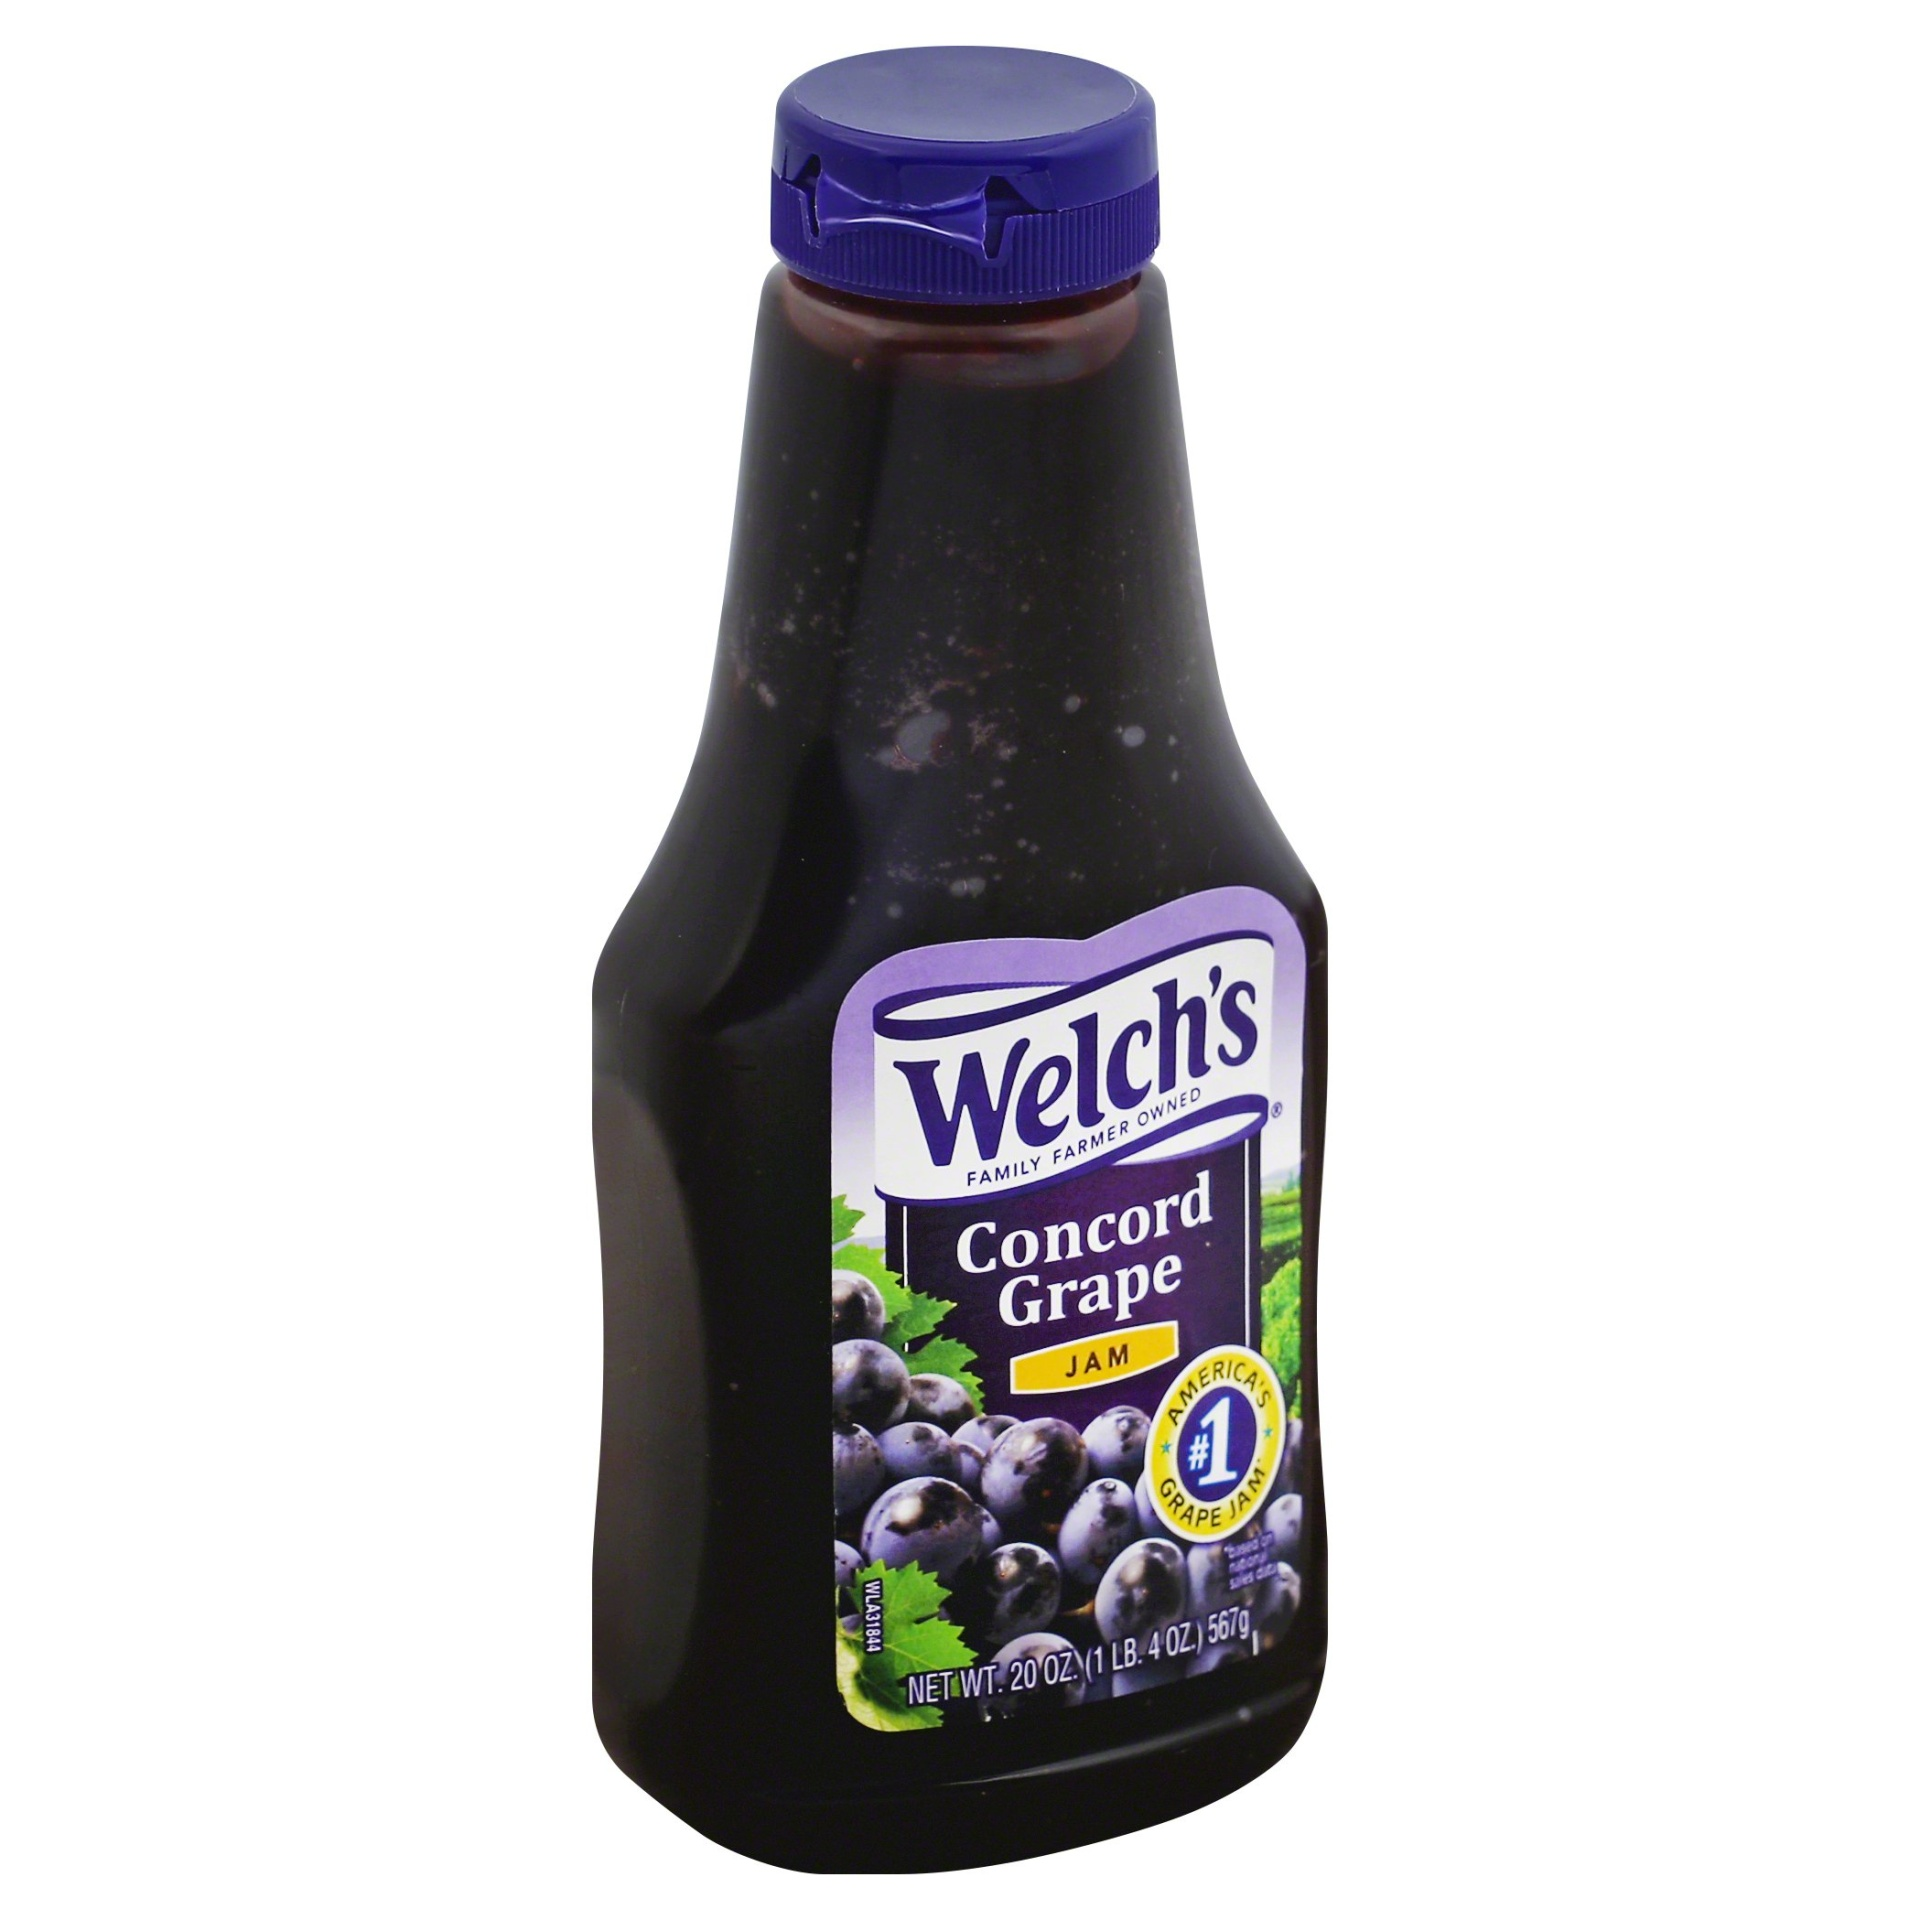 slide 1 of 8, Welch's Concord Grape Jam,